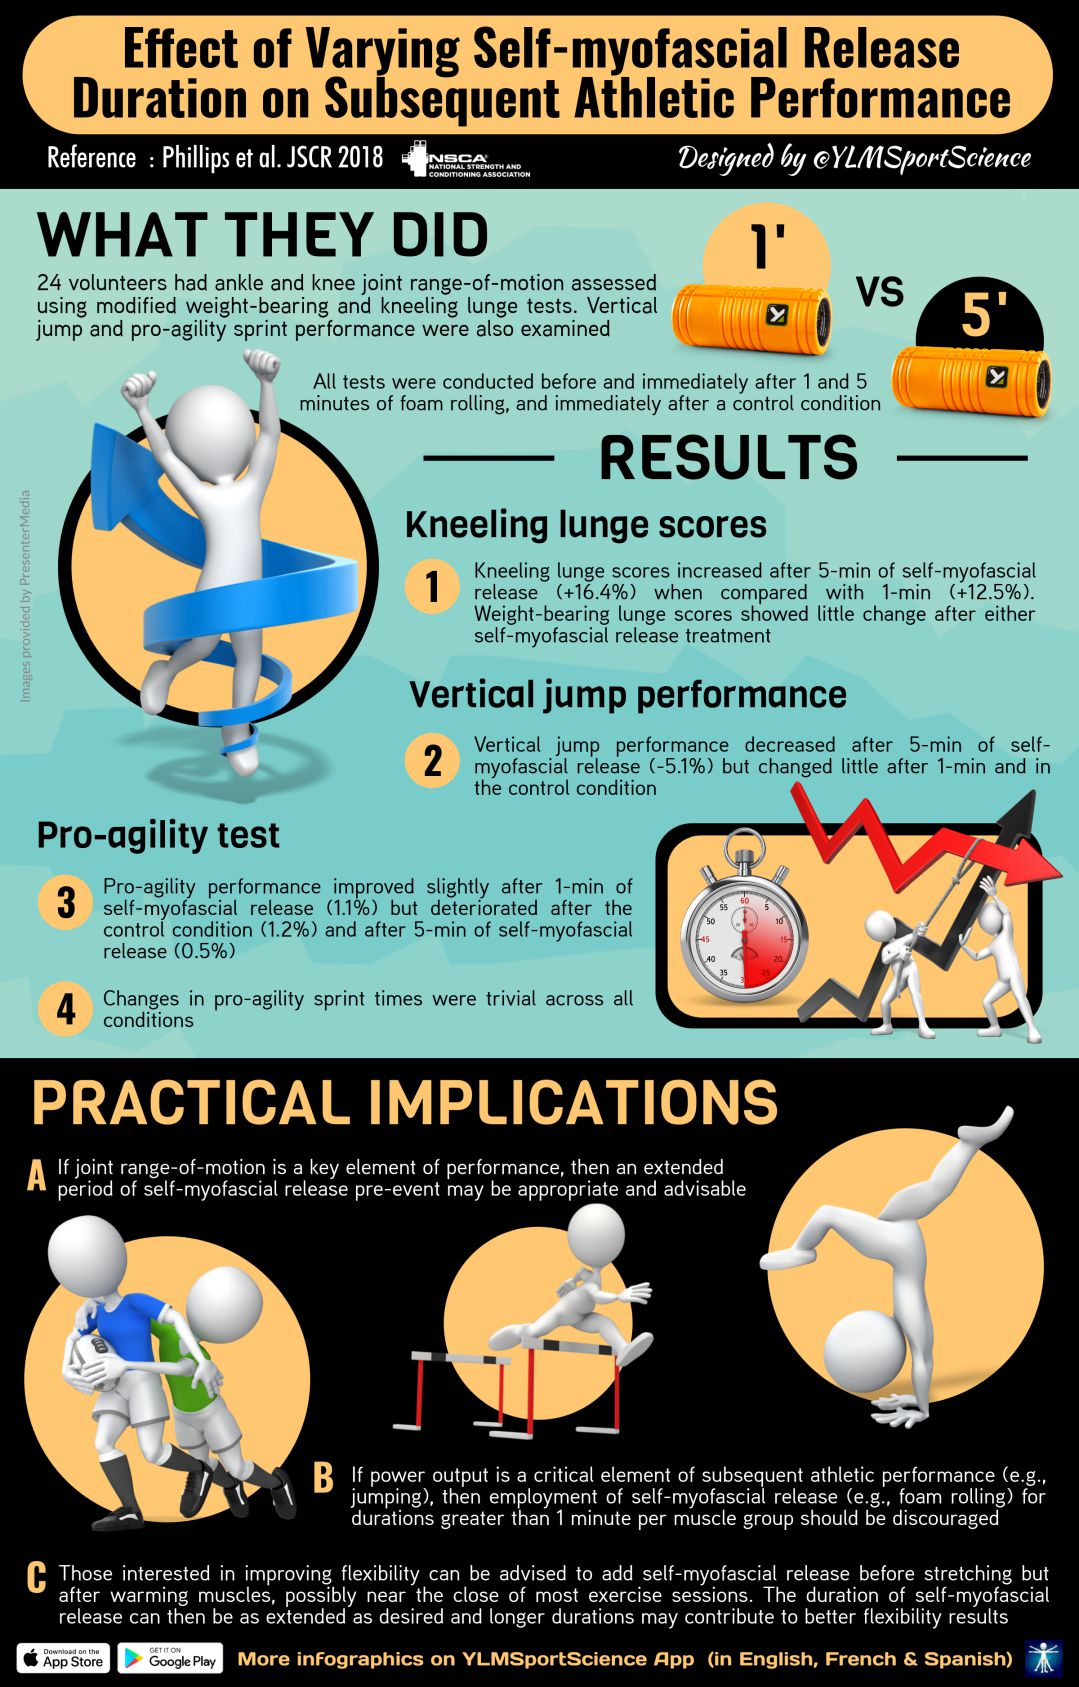 This infographic summarizes the results of a study that looked at the effects of different durations of SMR on athletic performance.